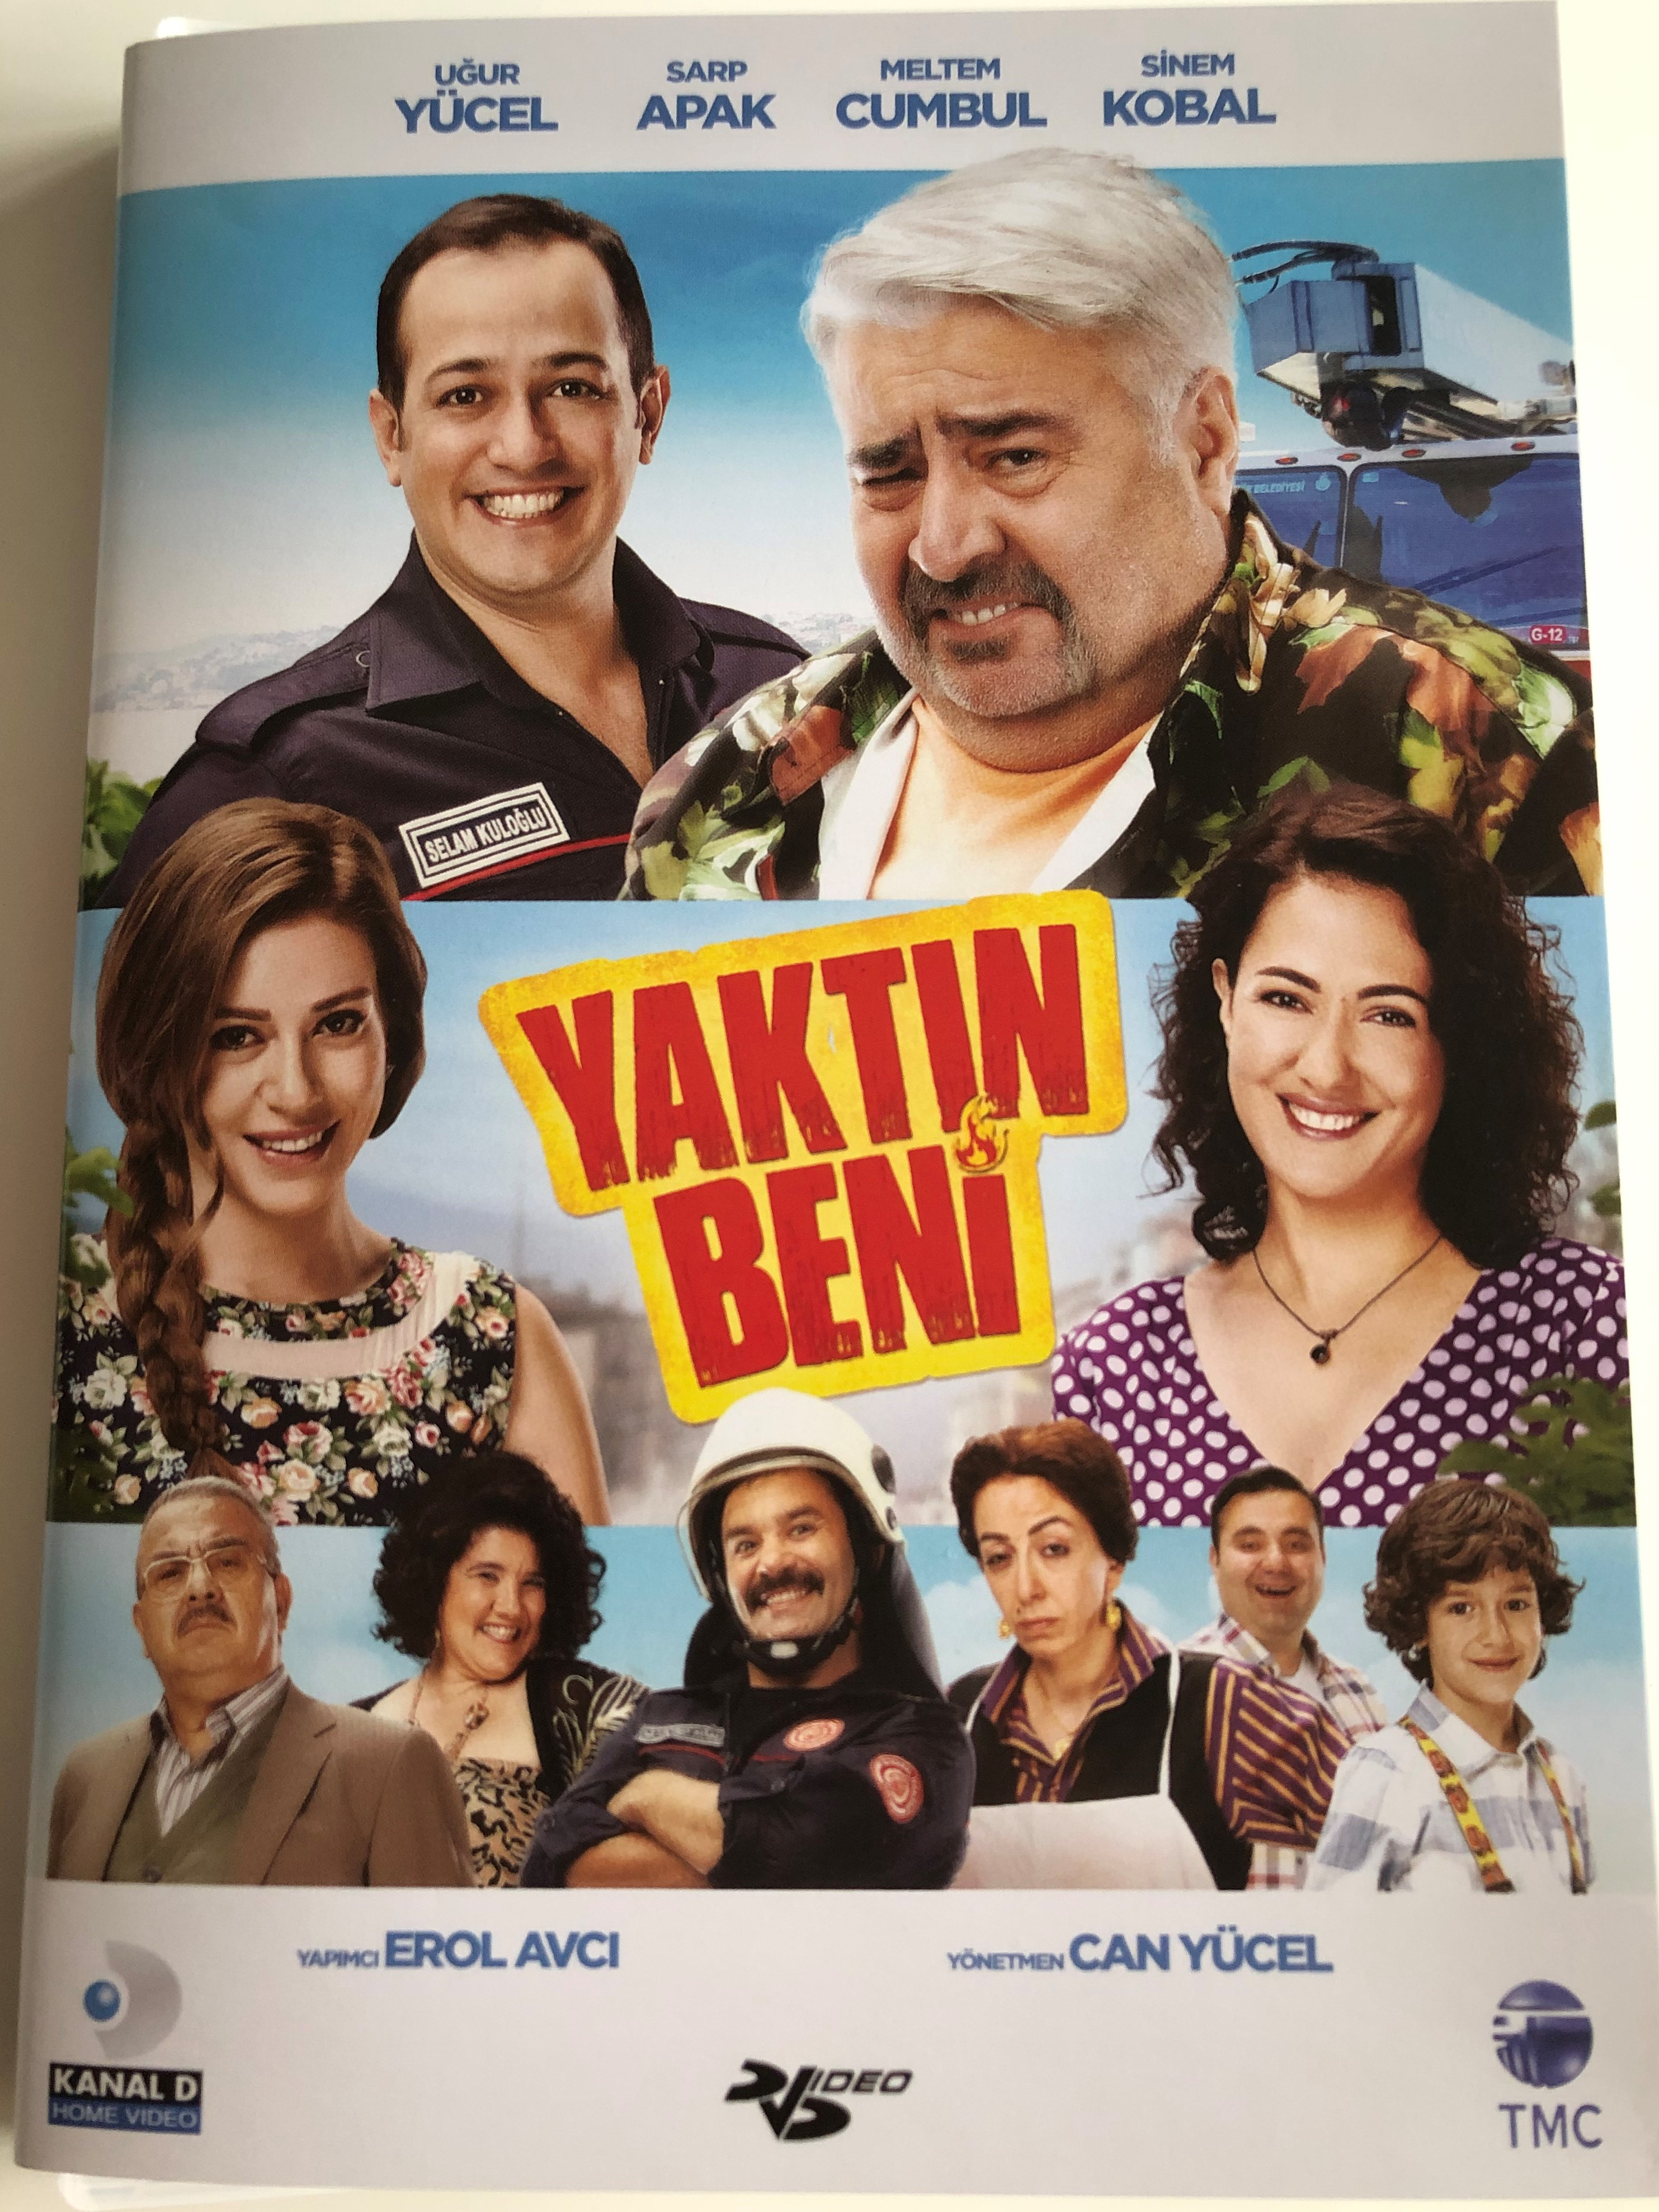 yaktin-beni-dvd-2015-directed-by-can-y-cel-1.jpg